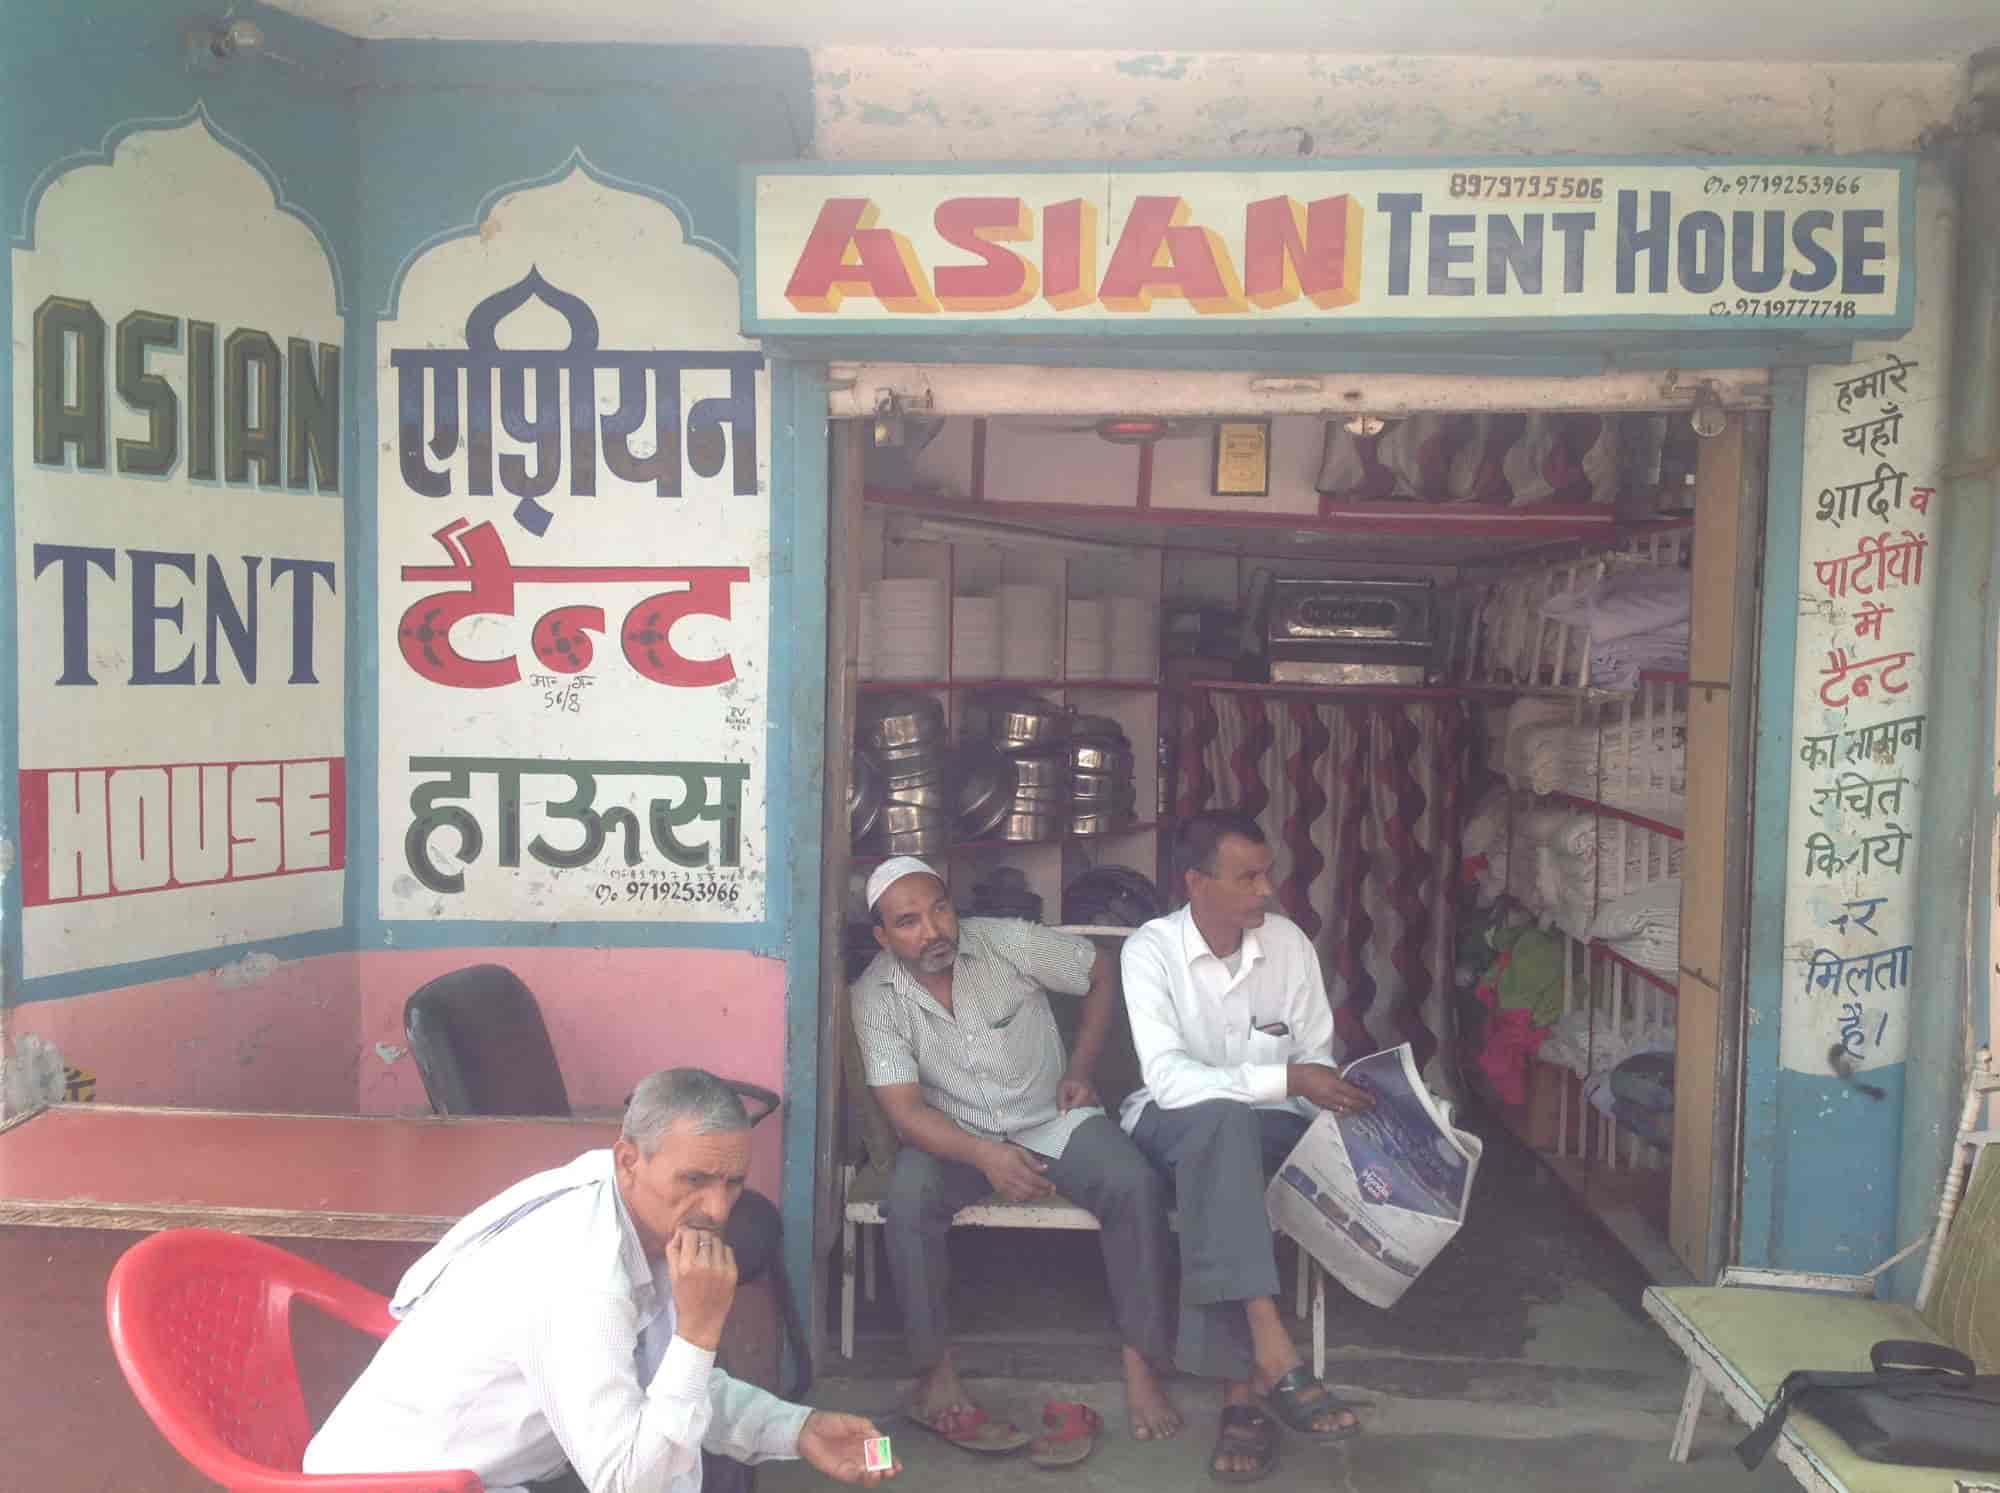 & Asian Tent House - Tent House in Bulandshahr - Justdial